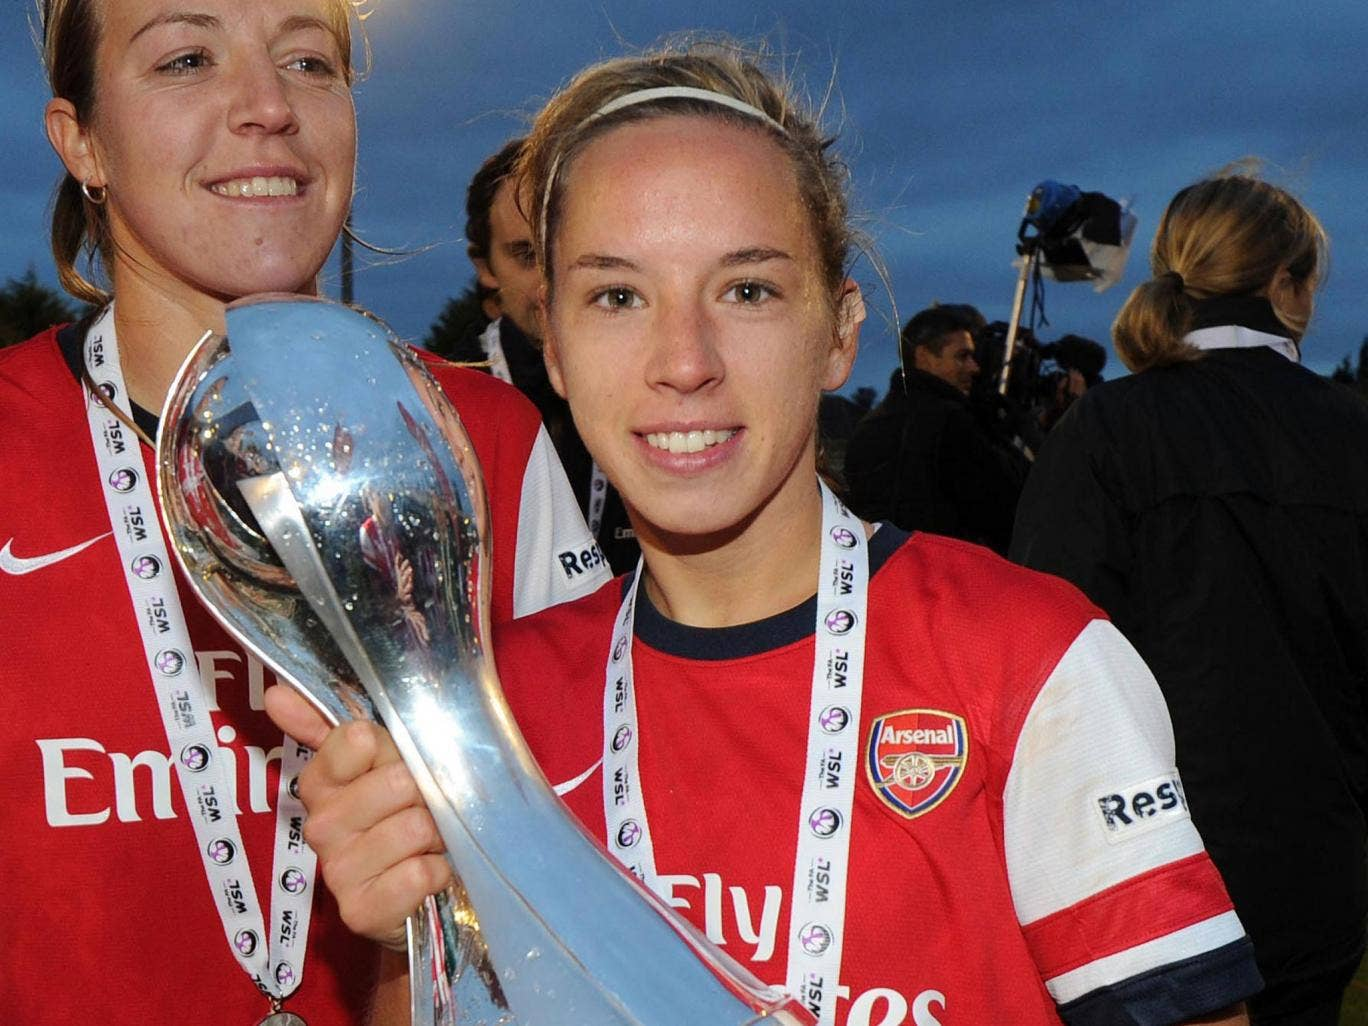 Jordan Nobbs of Arsenal with the WSL Trophy after the FA Women's Super League match between Arsenal Ladies FC and Doncaster Rovers Belles Ladies FC